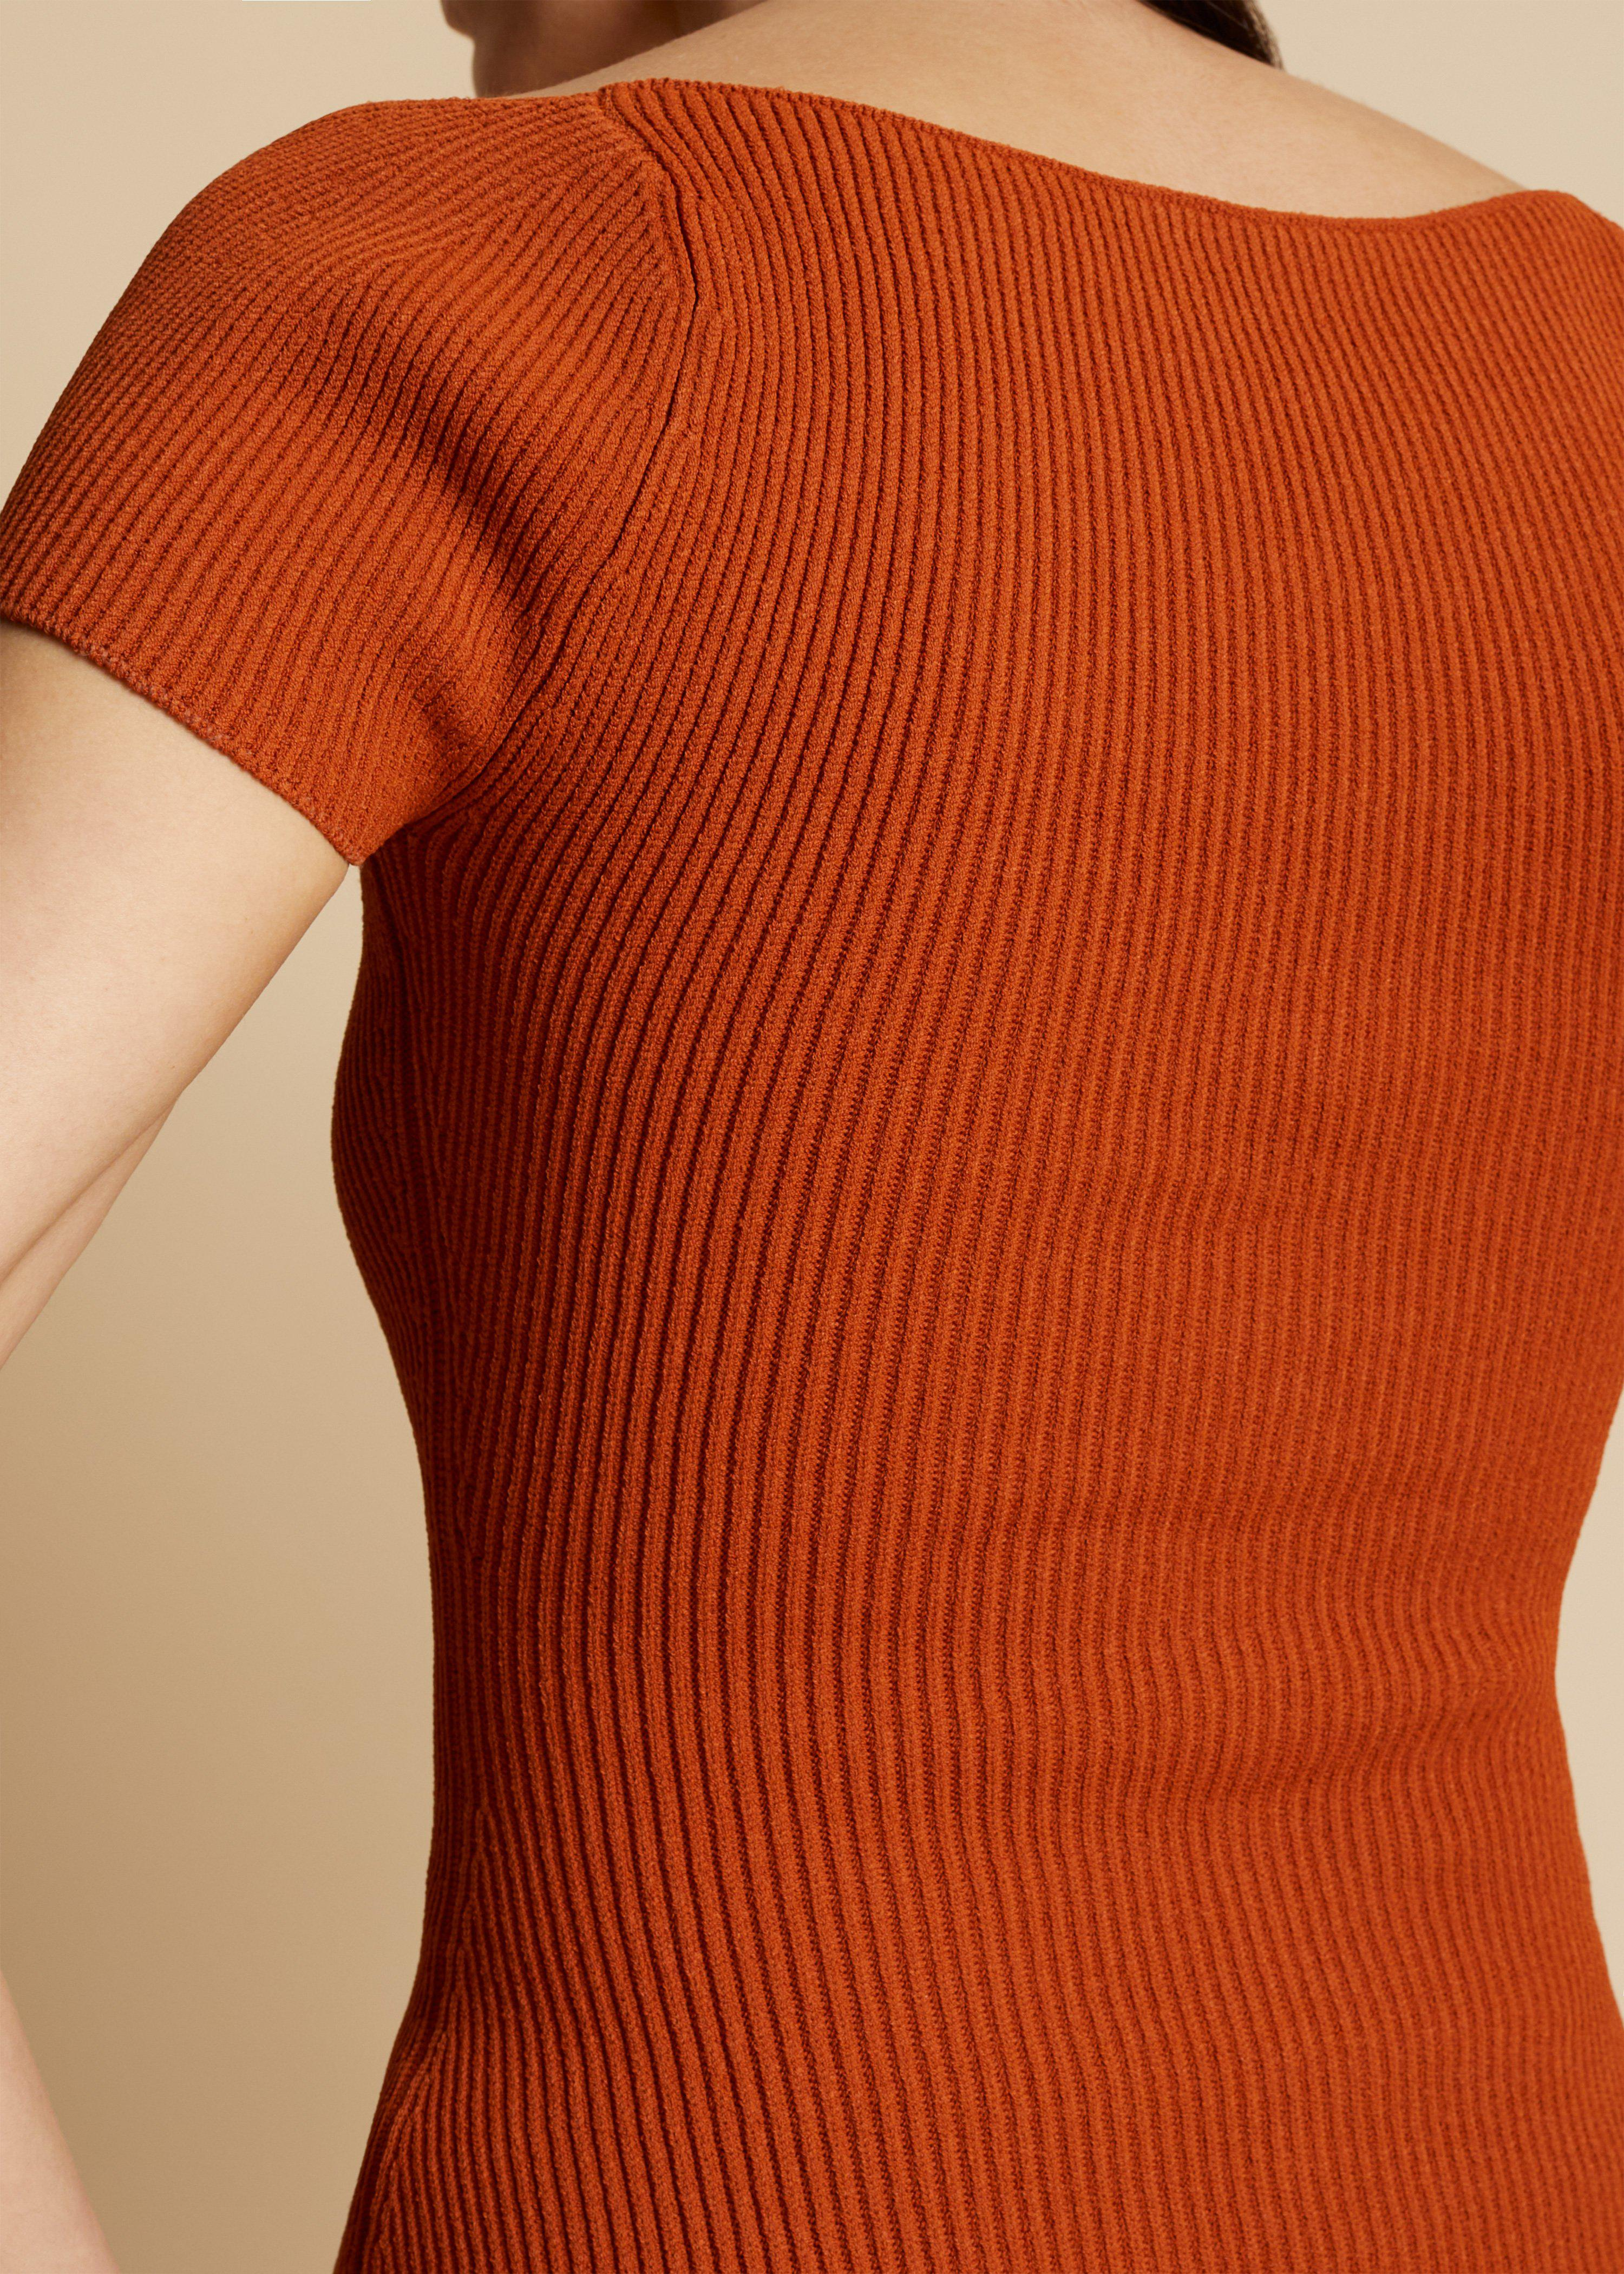 The Ista Top in Sienna 3